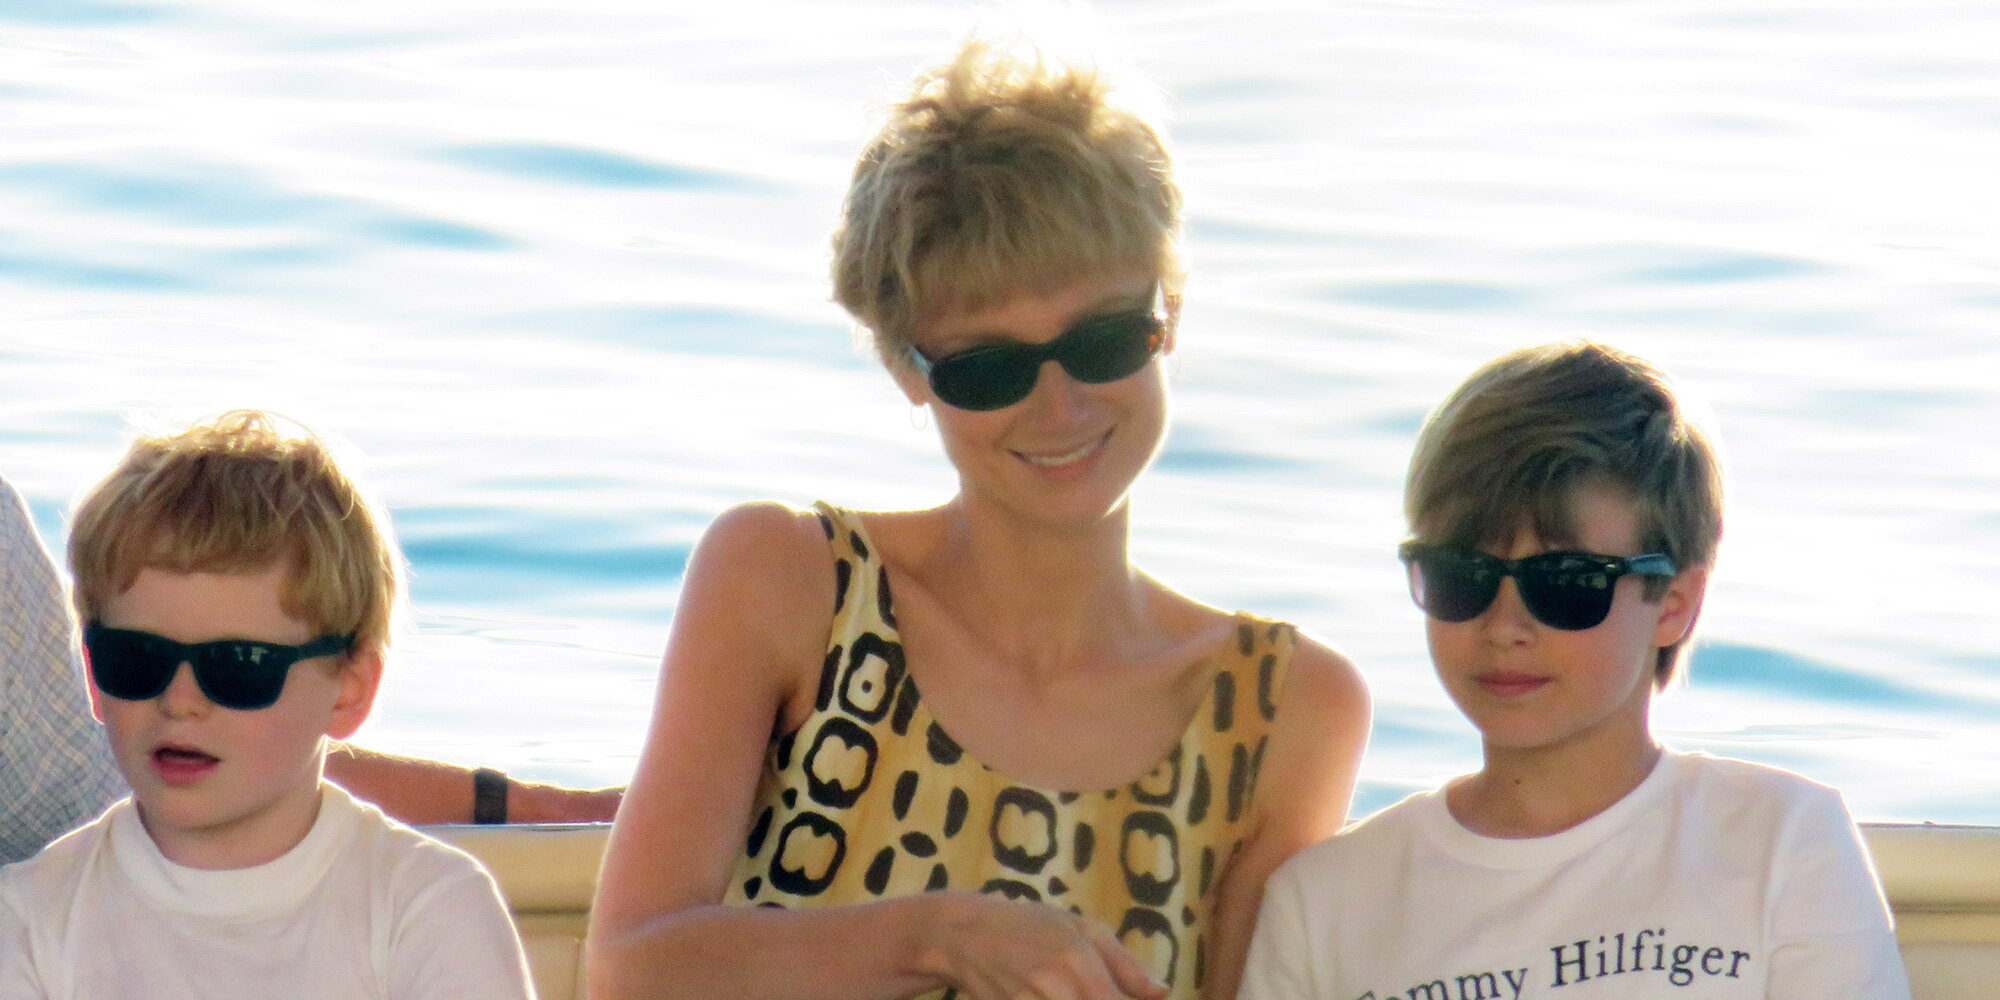 The Crown's Princess Diana Makes a Splash in a Bold Print While Filming on a Yacht in Mallorca